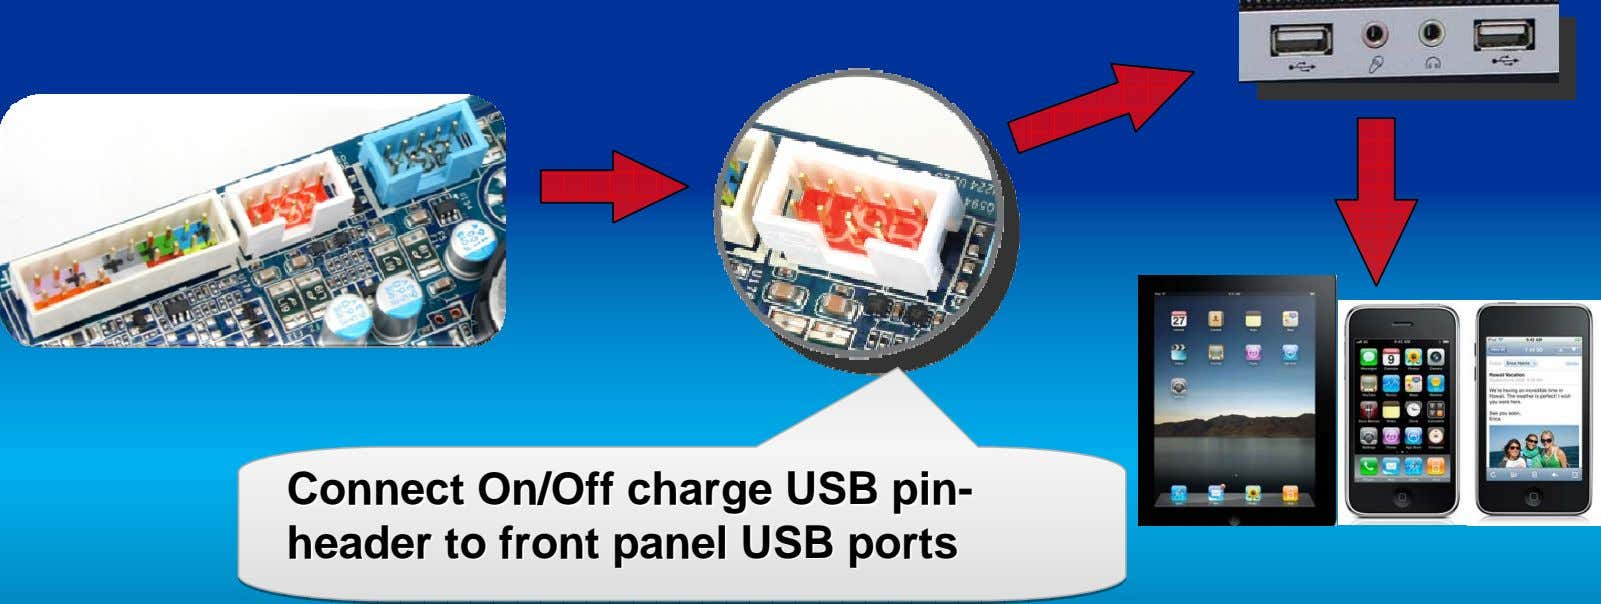 ConnectConnect Connect On/OffOn/Off On/Off chargecharge charge USBUSB USB pinpin-- pin- headerheader header toto to